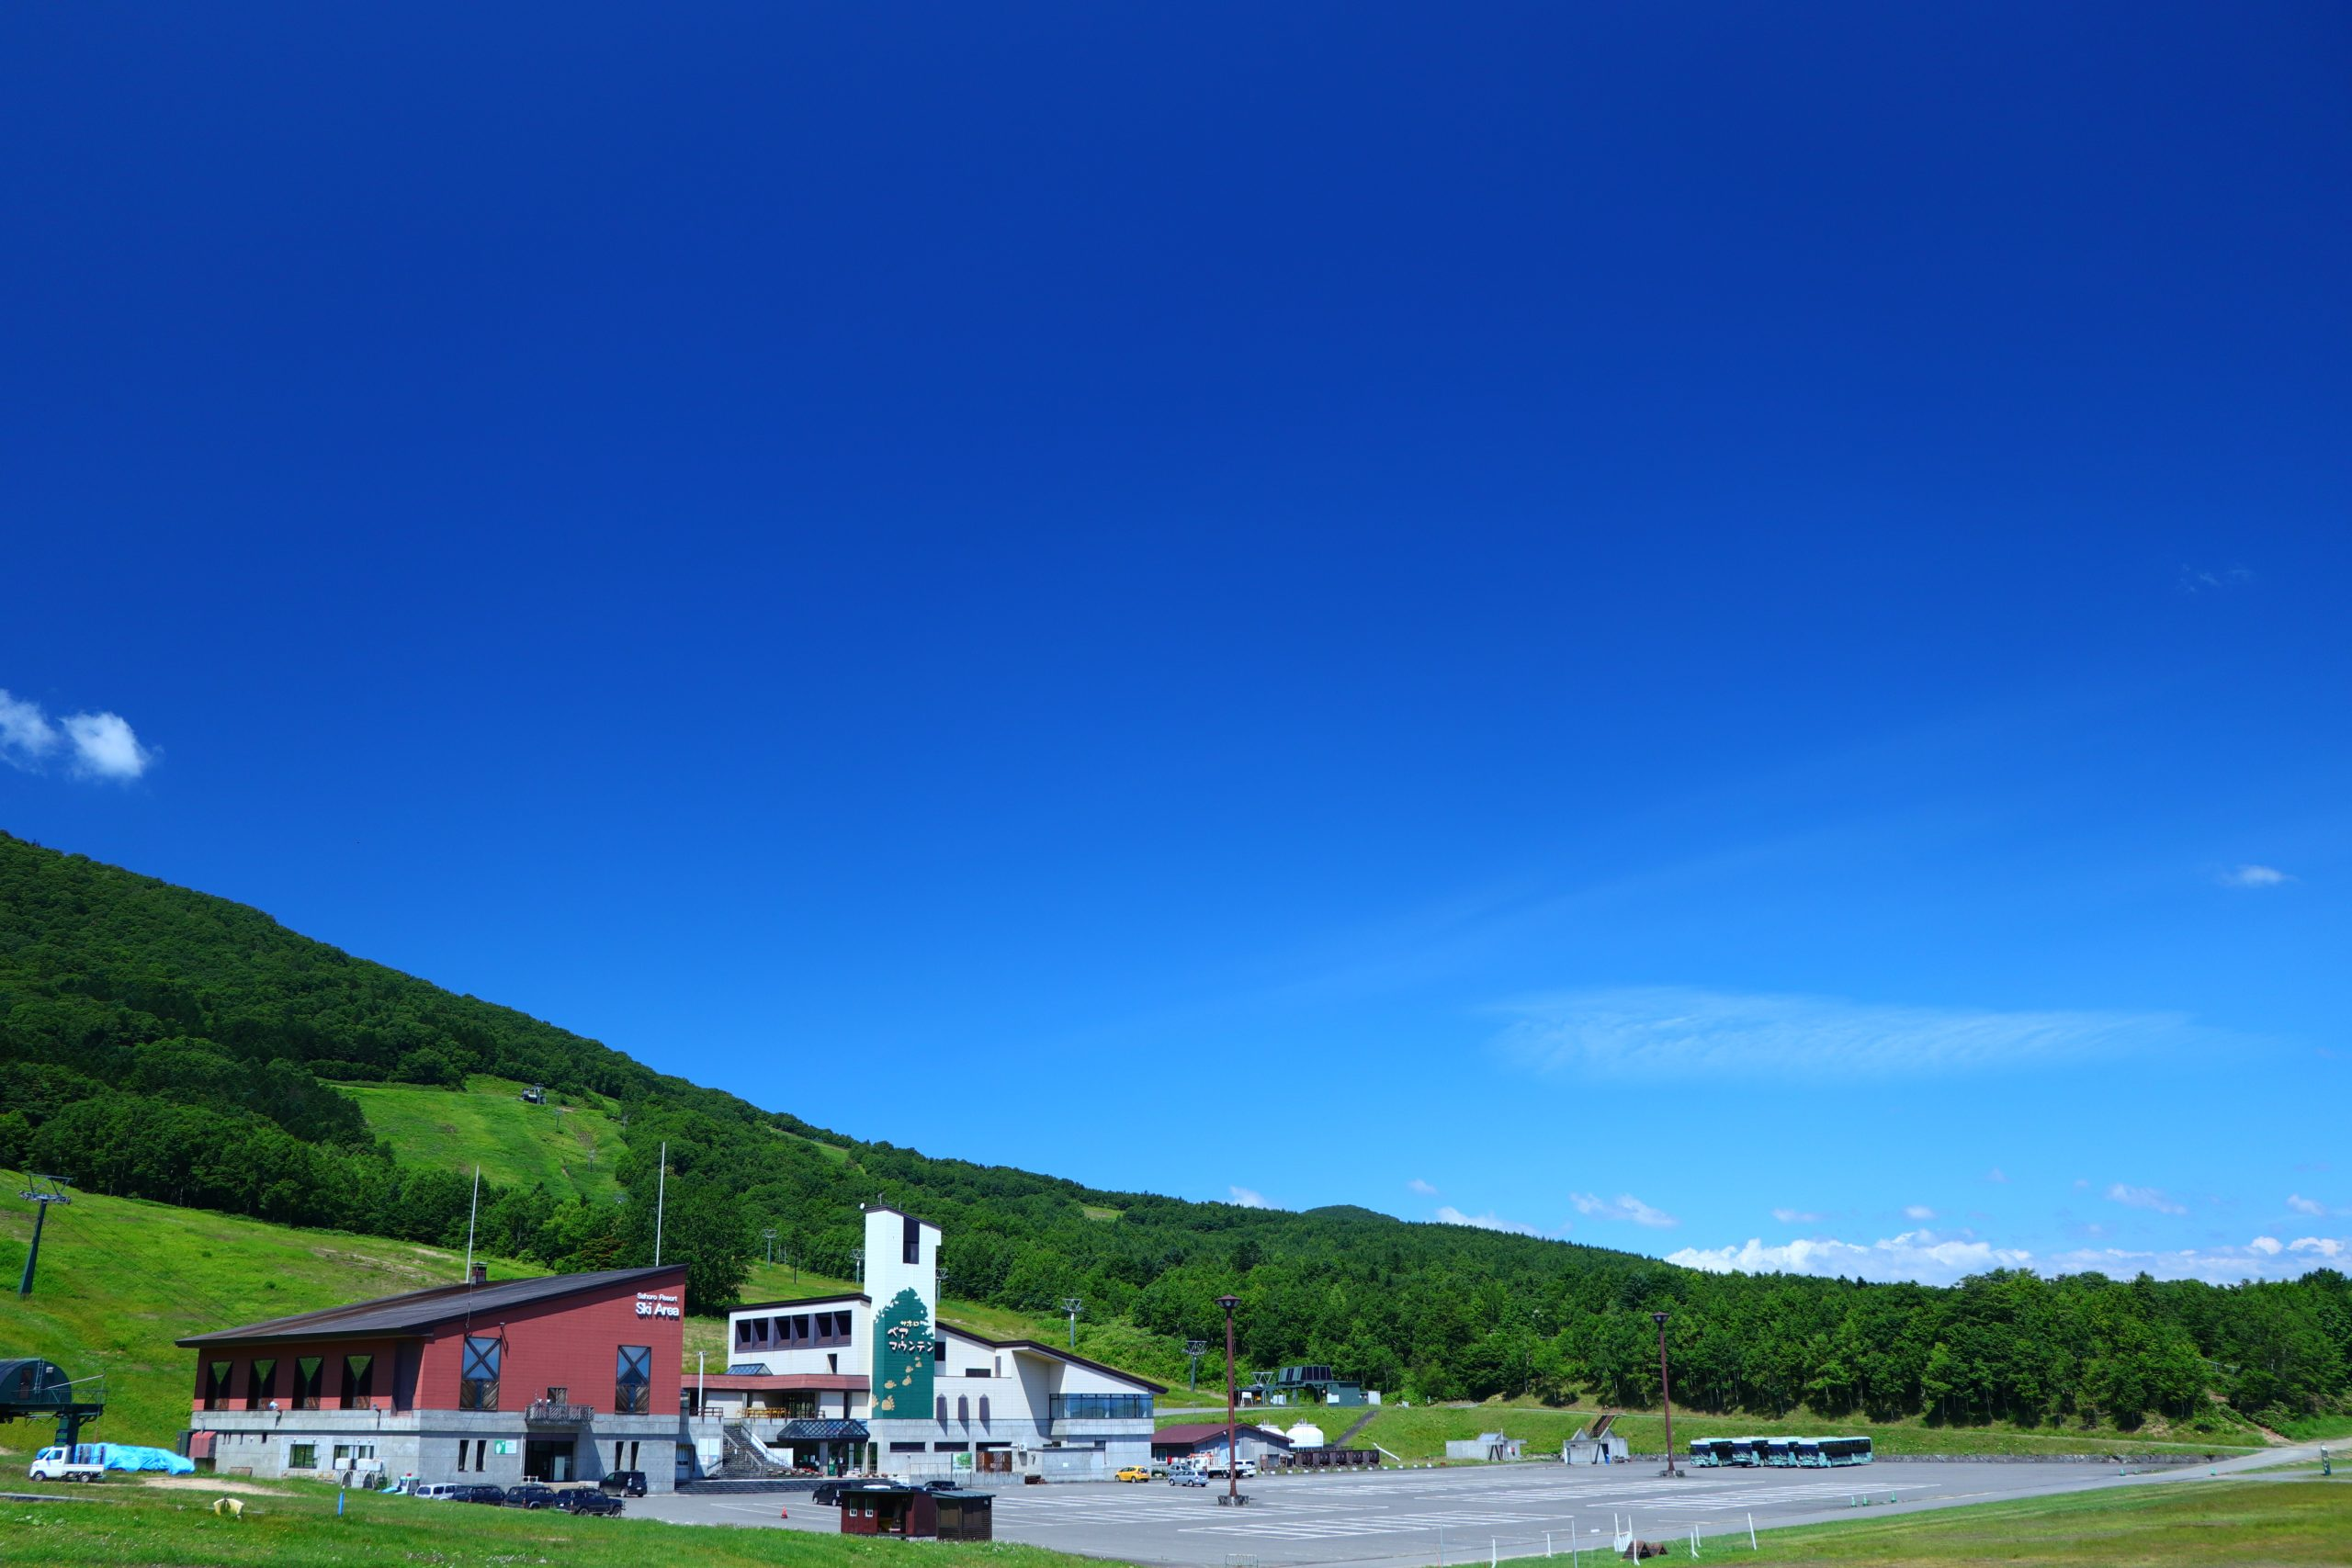 Bear Mountain Entrance and Parking